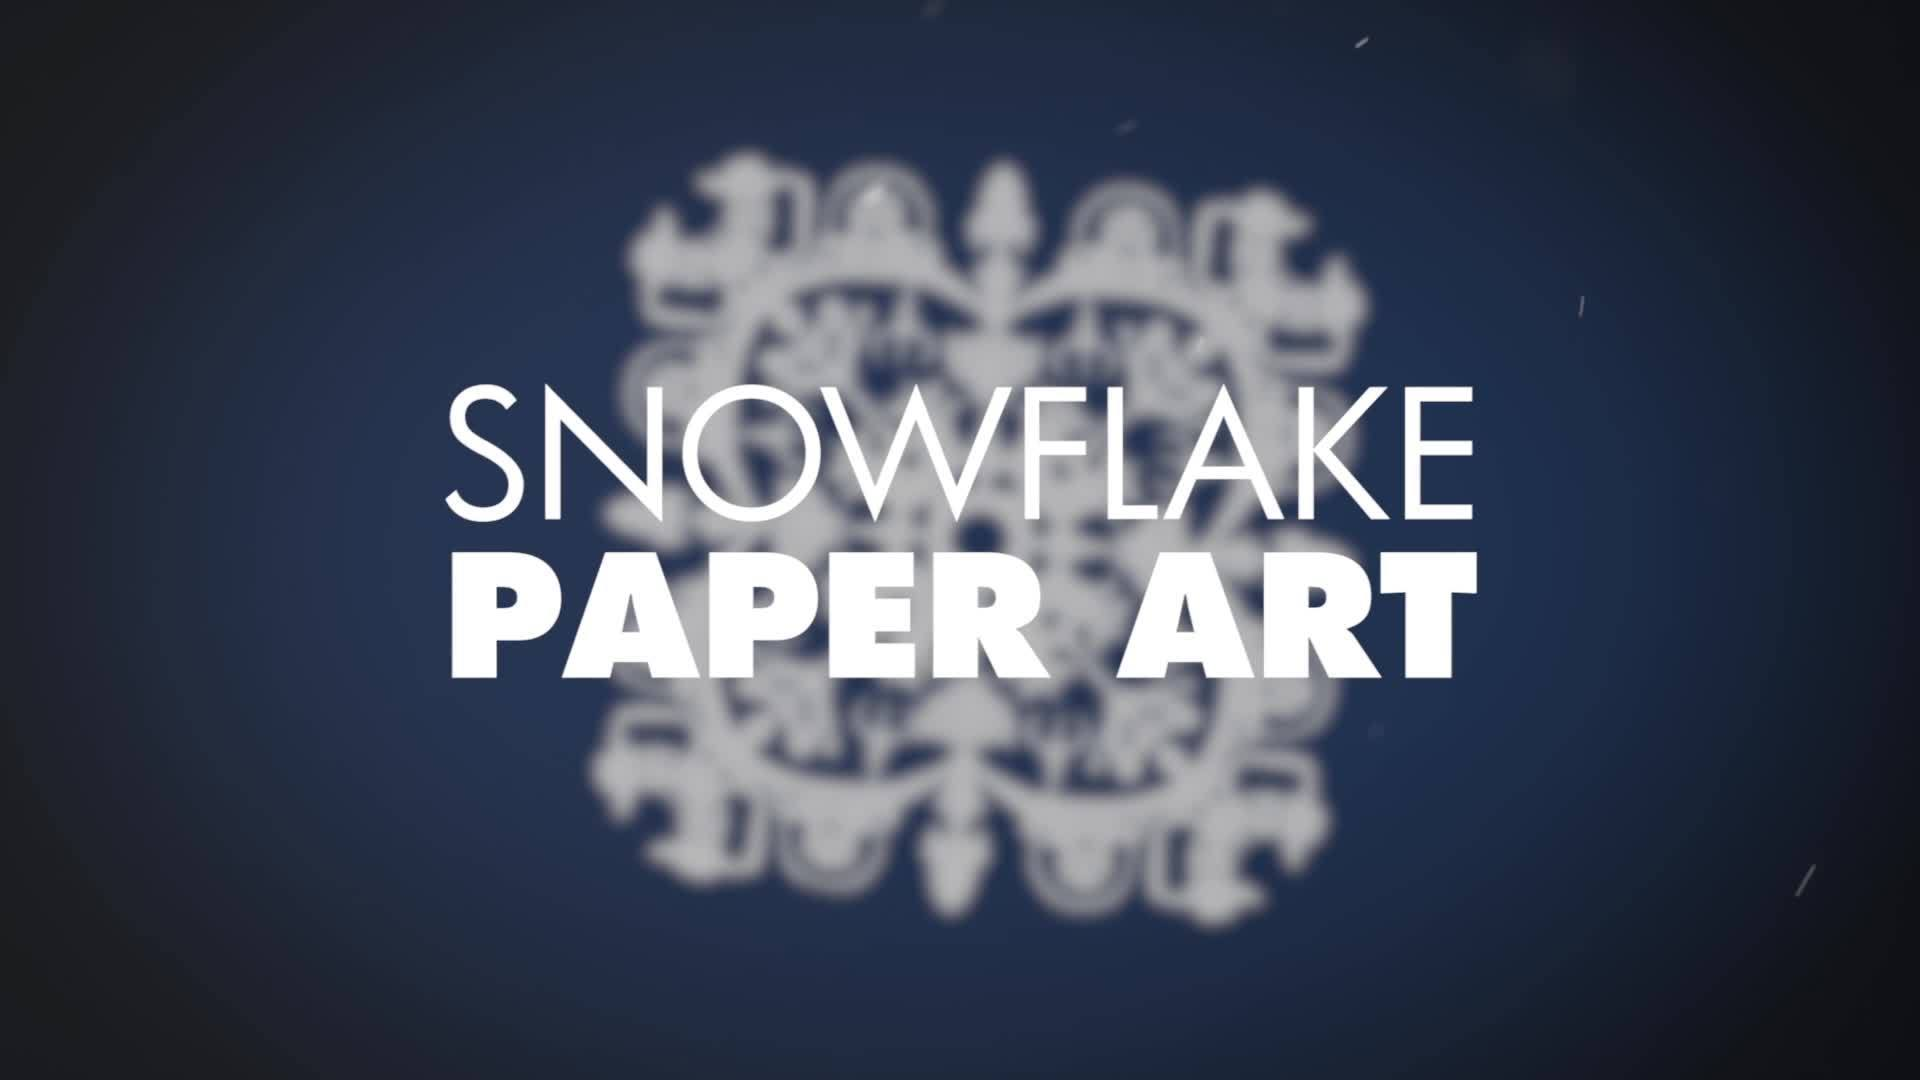 Toy Story Snowflake Paper Art | Oh My Disney